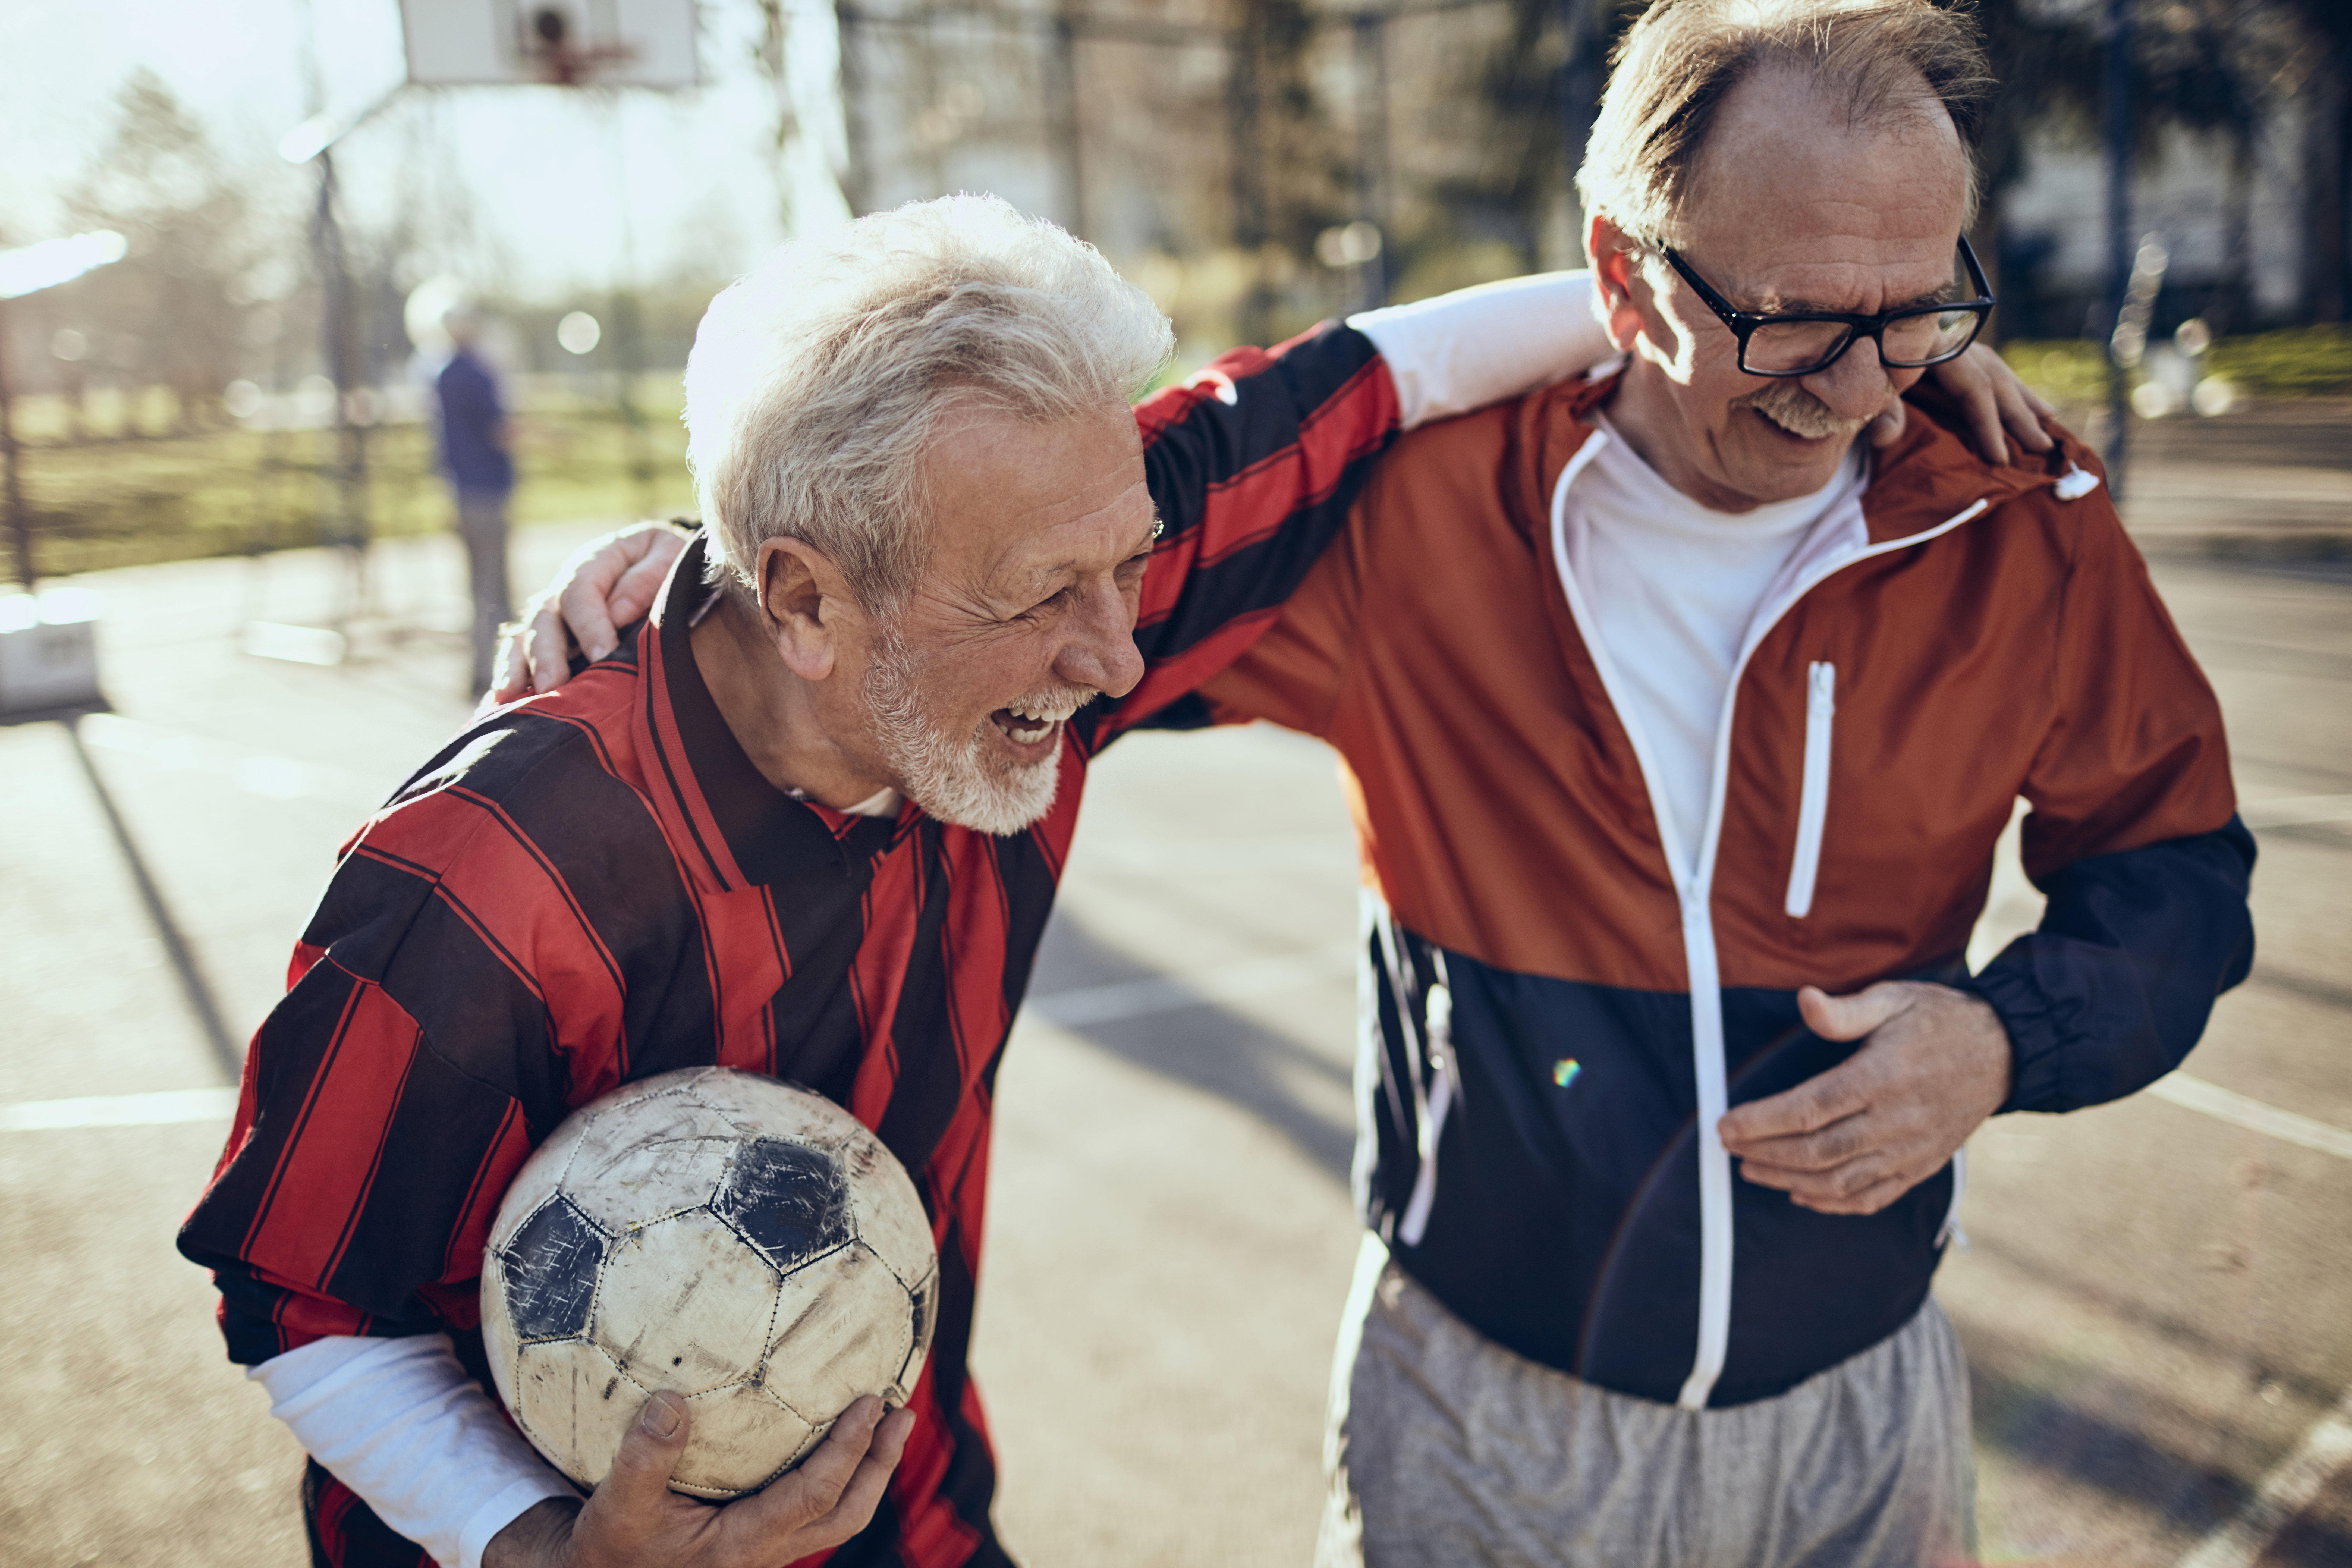 two-men-laughing-with-soccer-ball